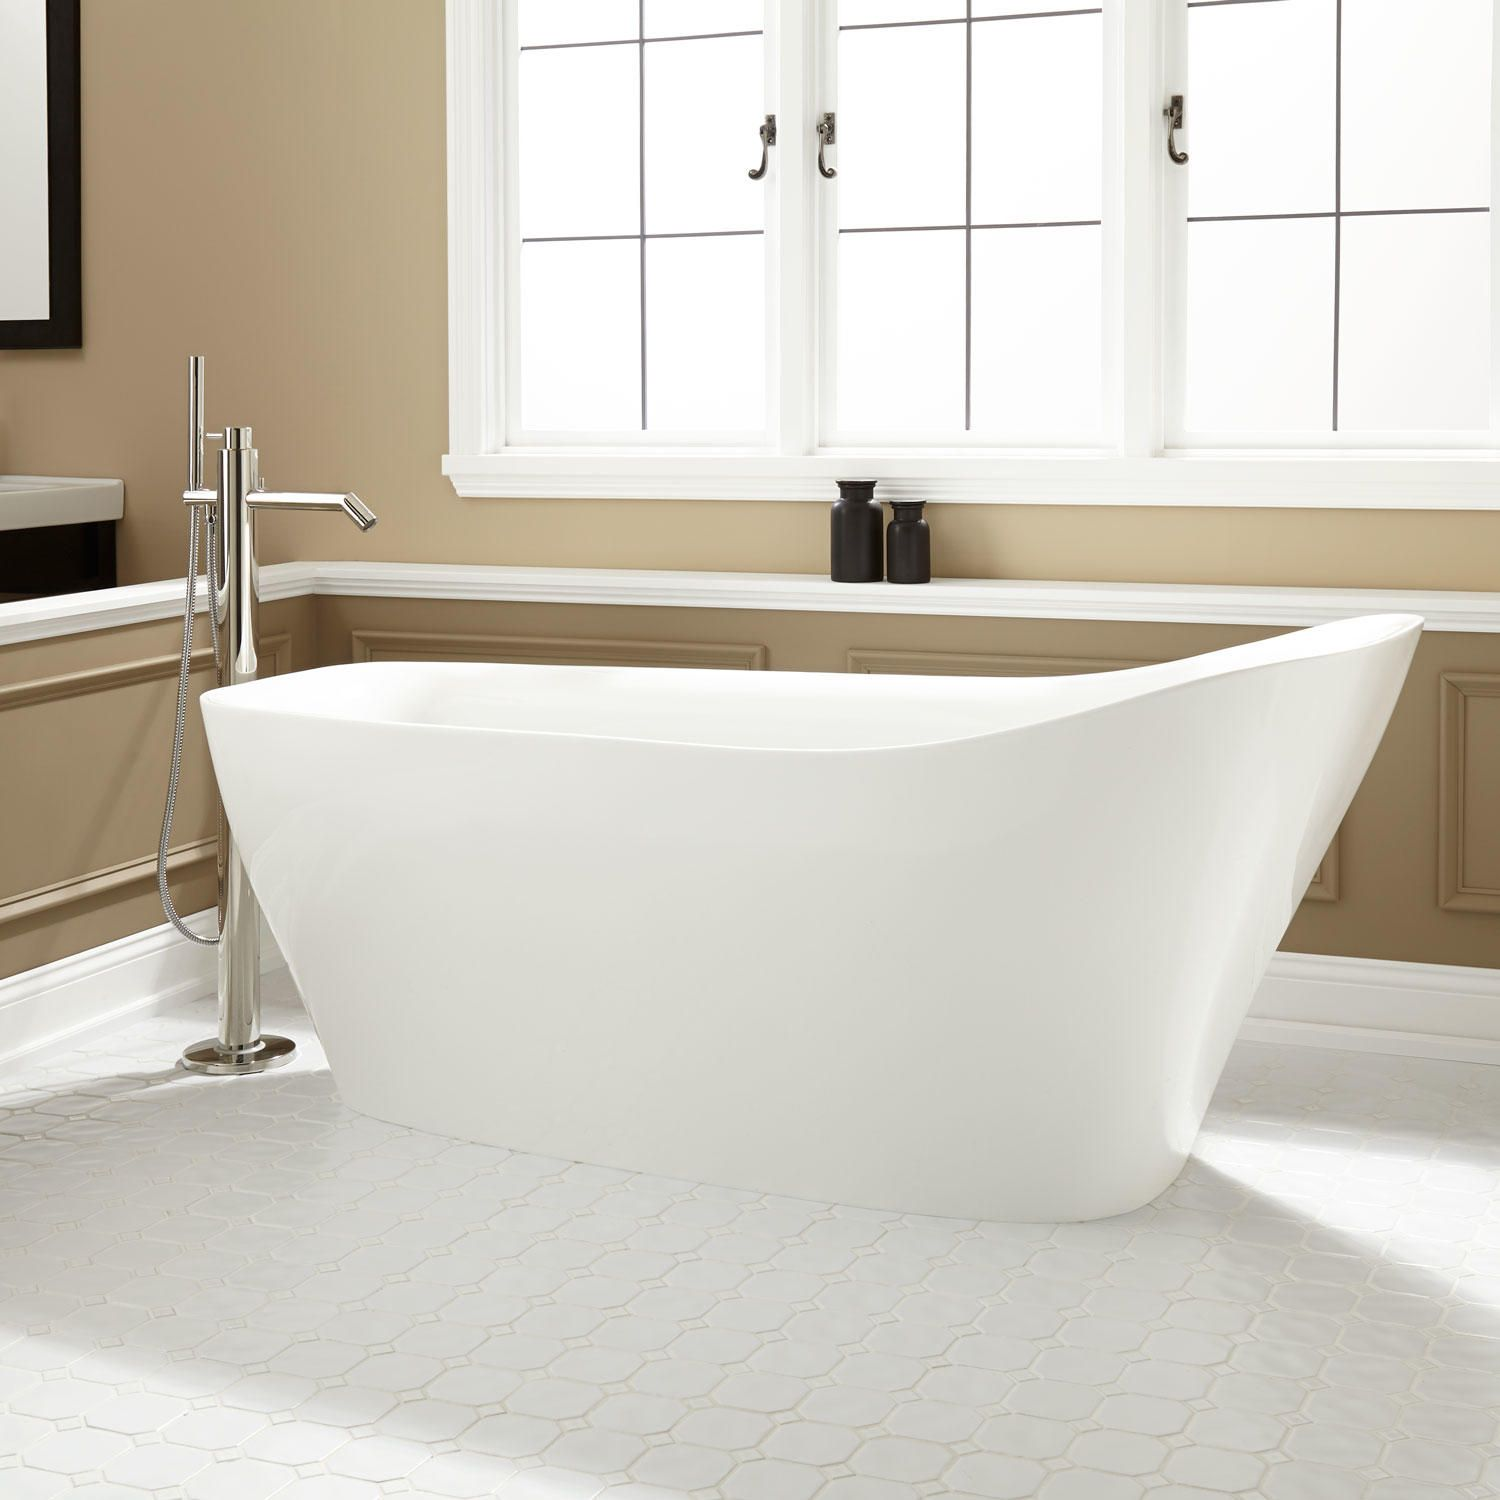 Vivien Acrylic Freestanding Slipper Tub | Freestanding tub, Tubs and ...